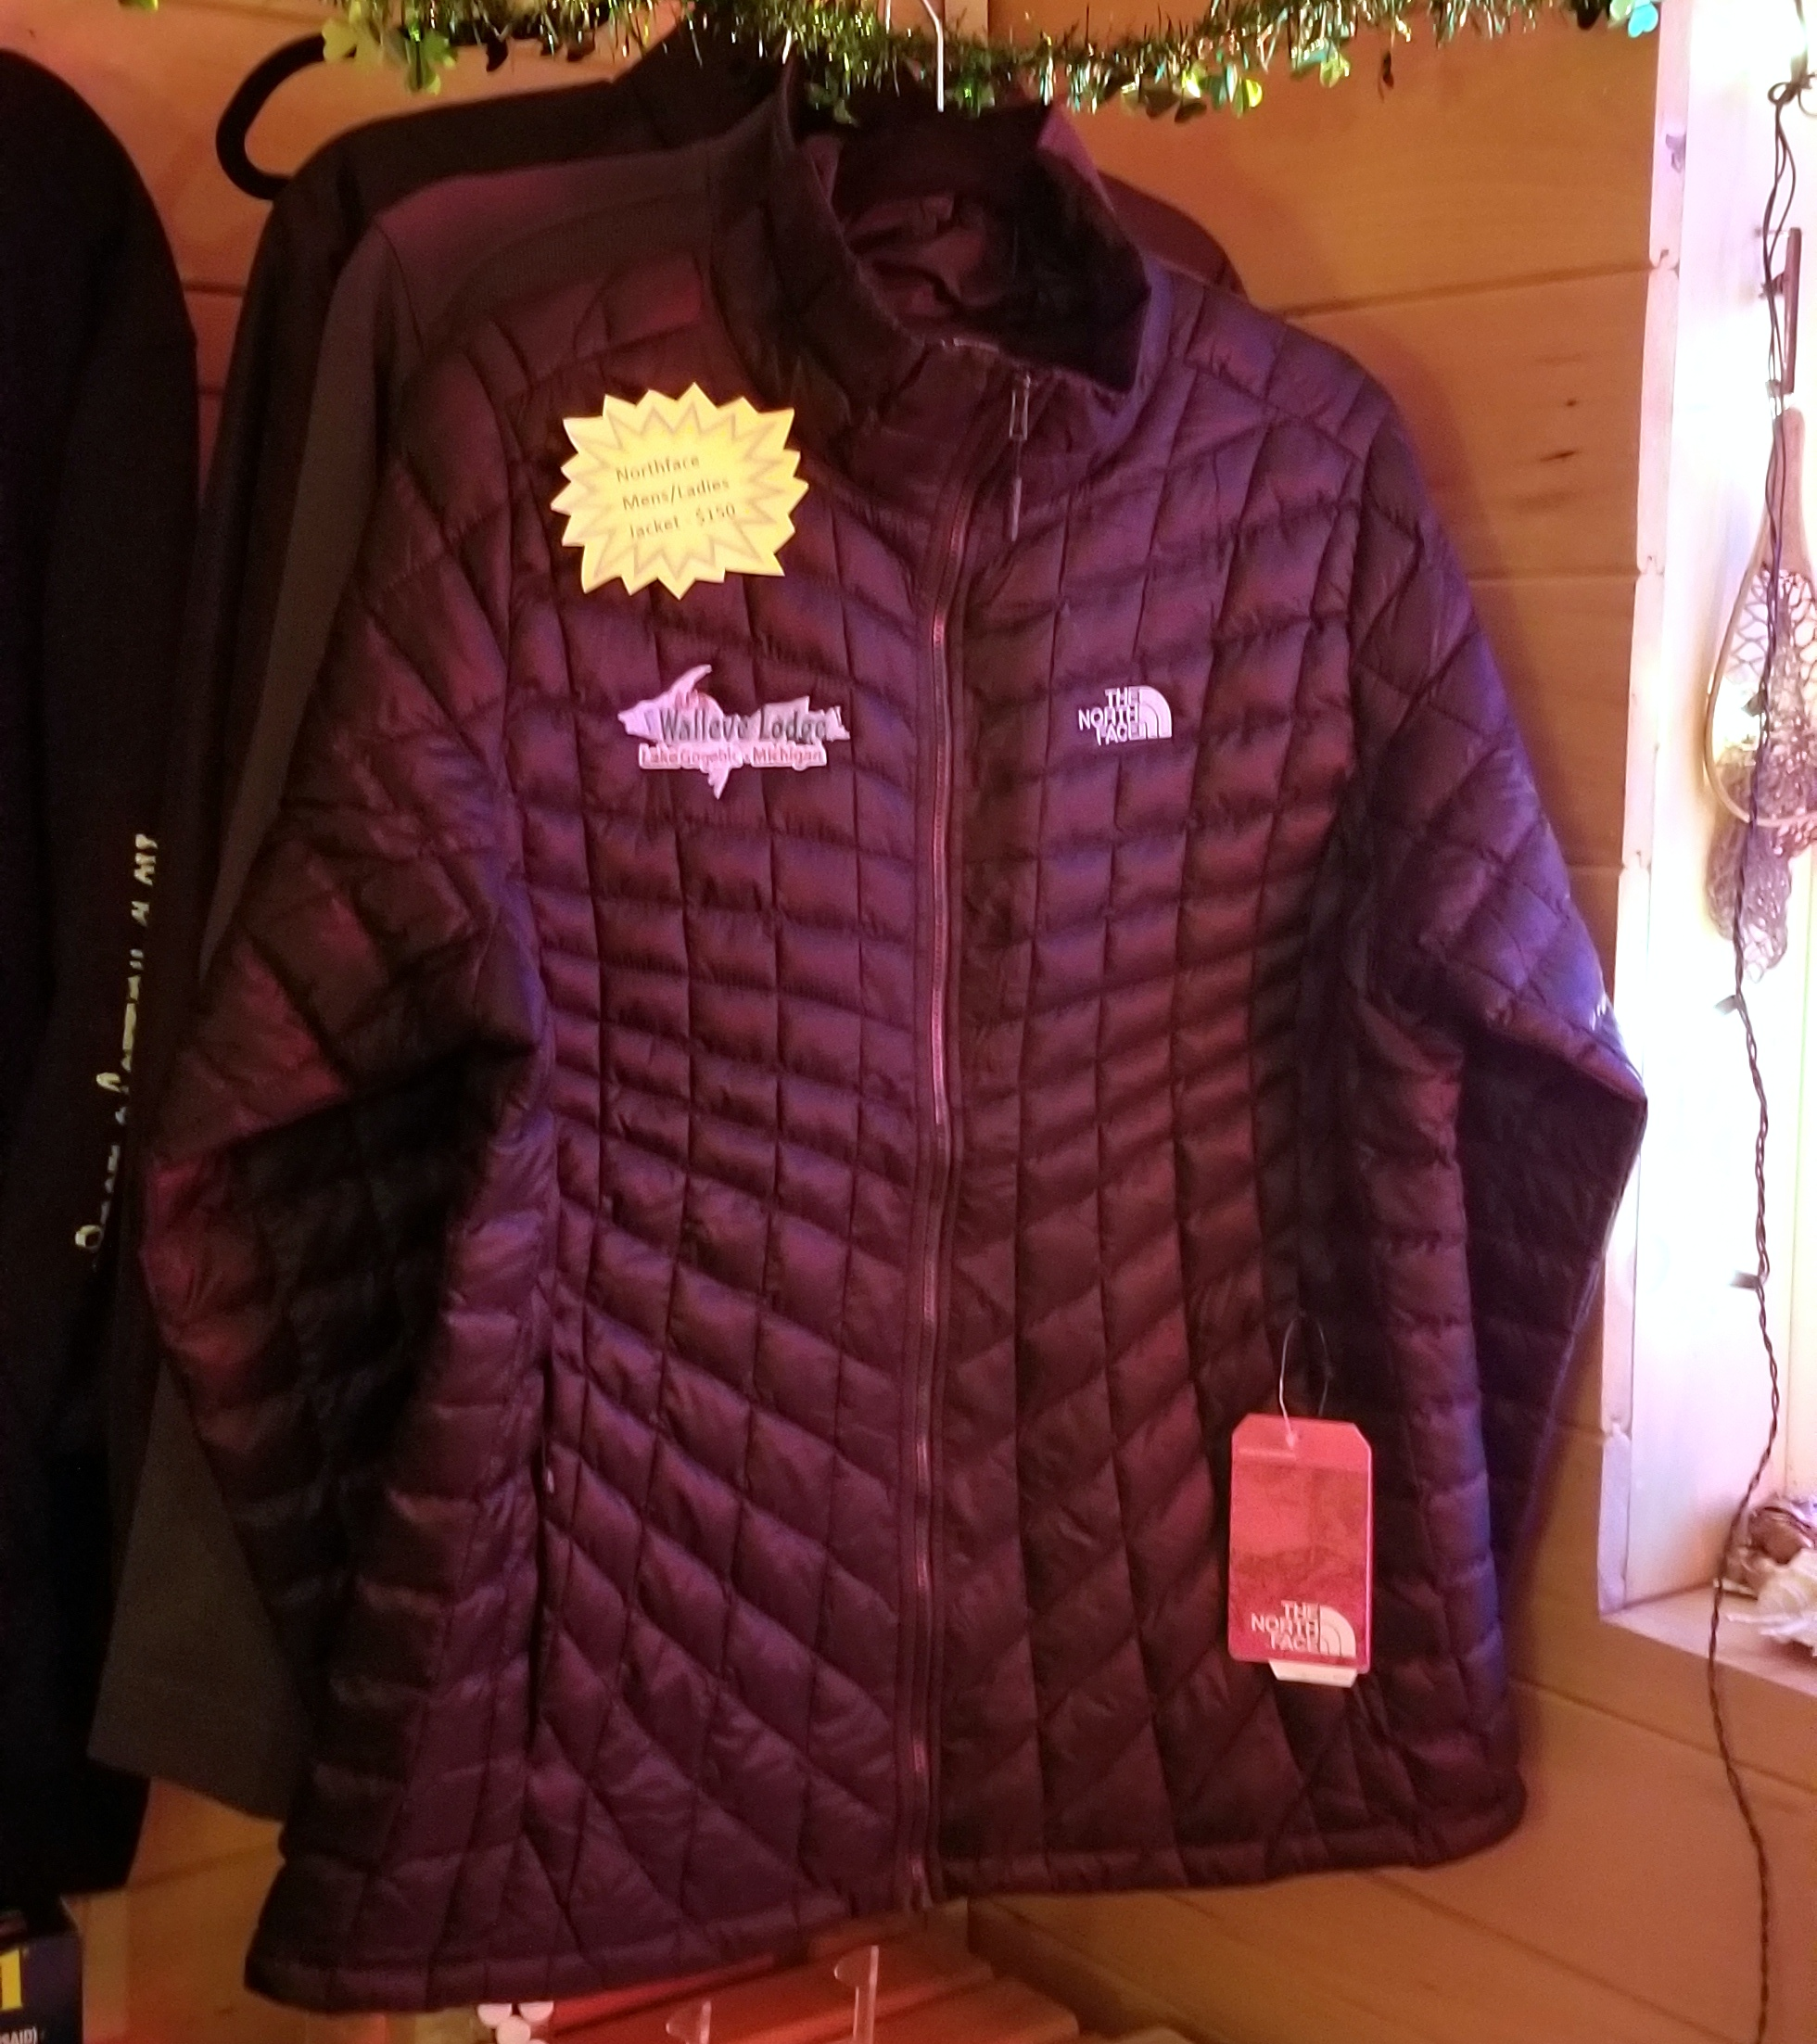 Ladies NorthFace Jacket